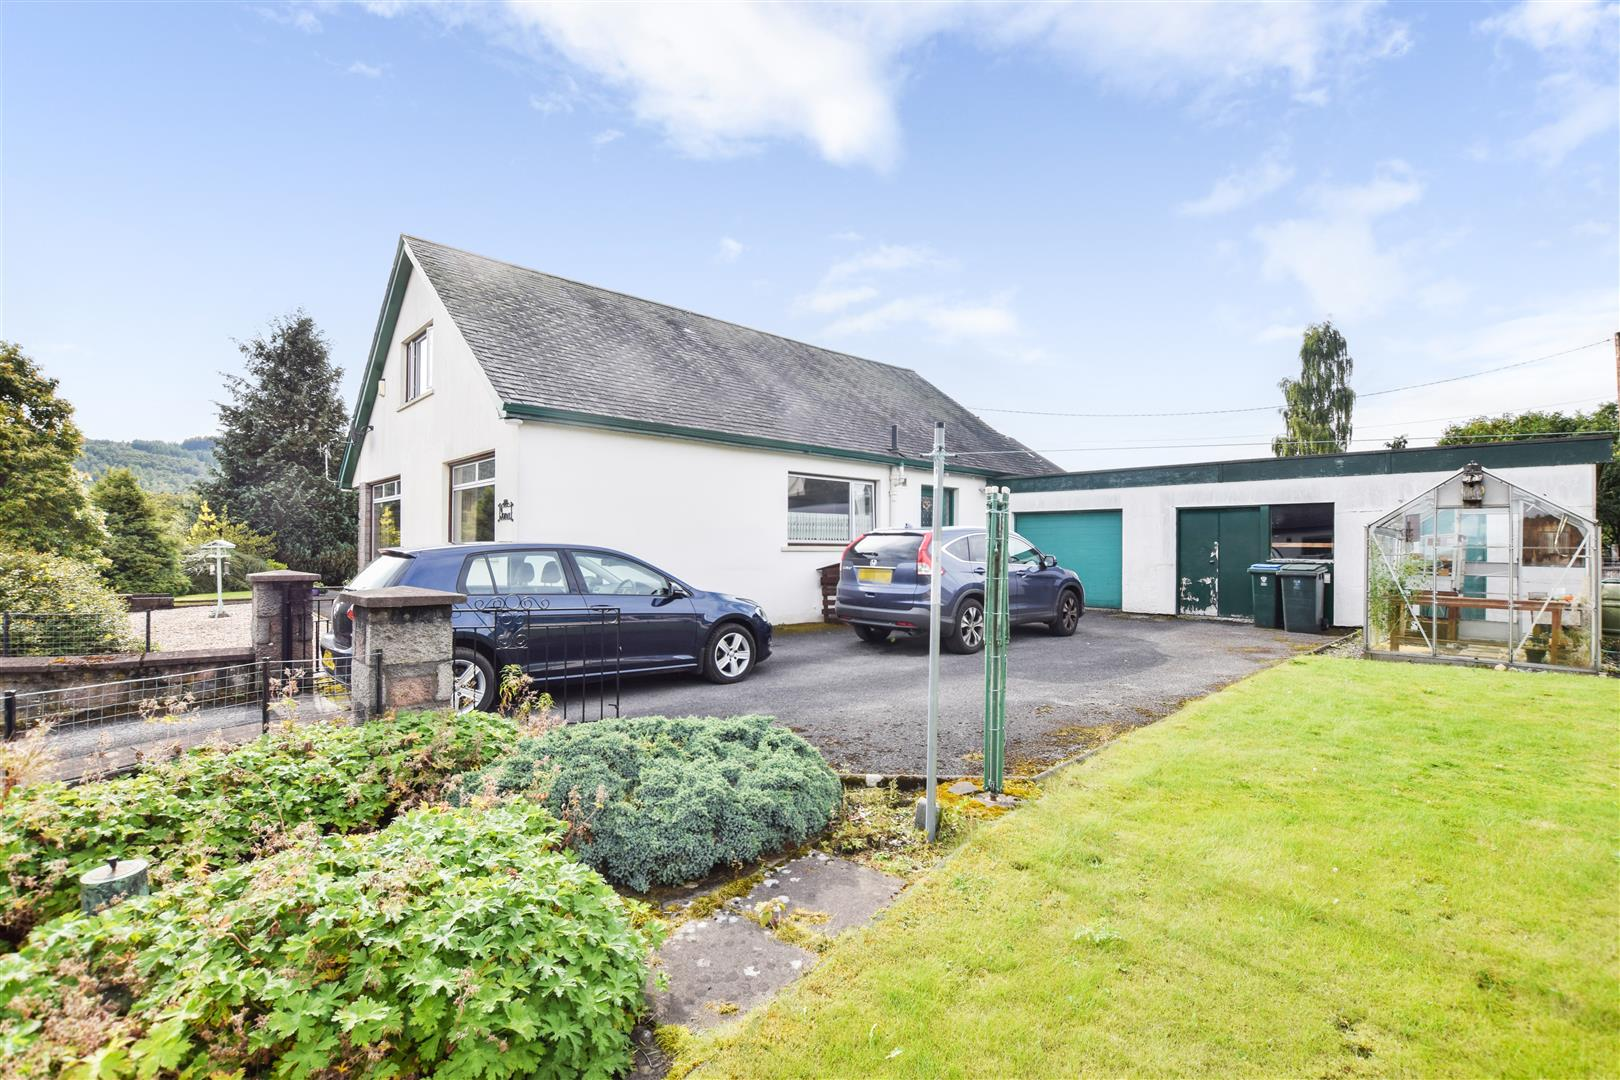 Iona, Perth Road, Pitlochry, Perthshire, PH16 5LY, UK